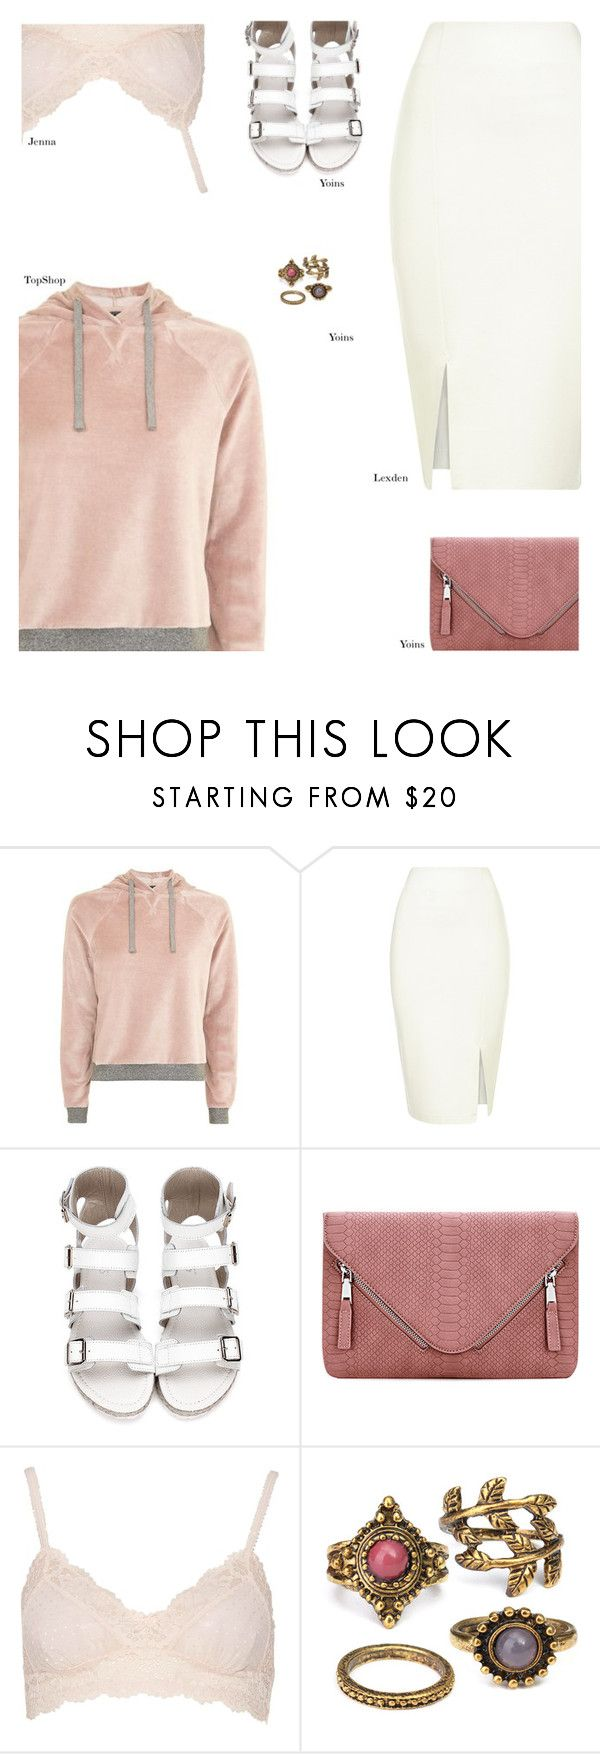 """YOINS"" by s-thinks ❤ liked on Polyvore featuring Topshop, ootd, yoins, yoinscollection and loveyoins"